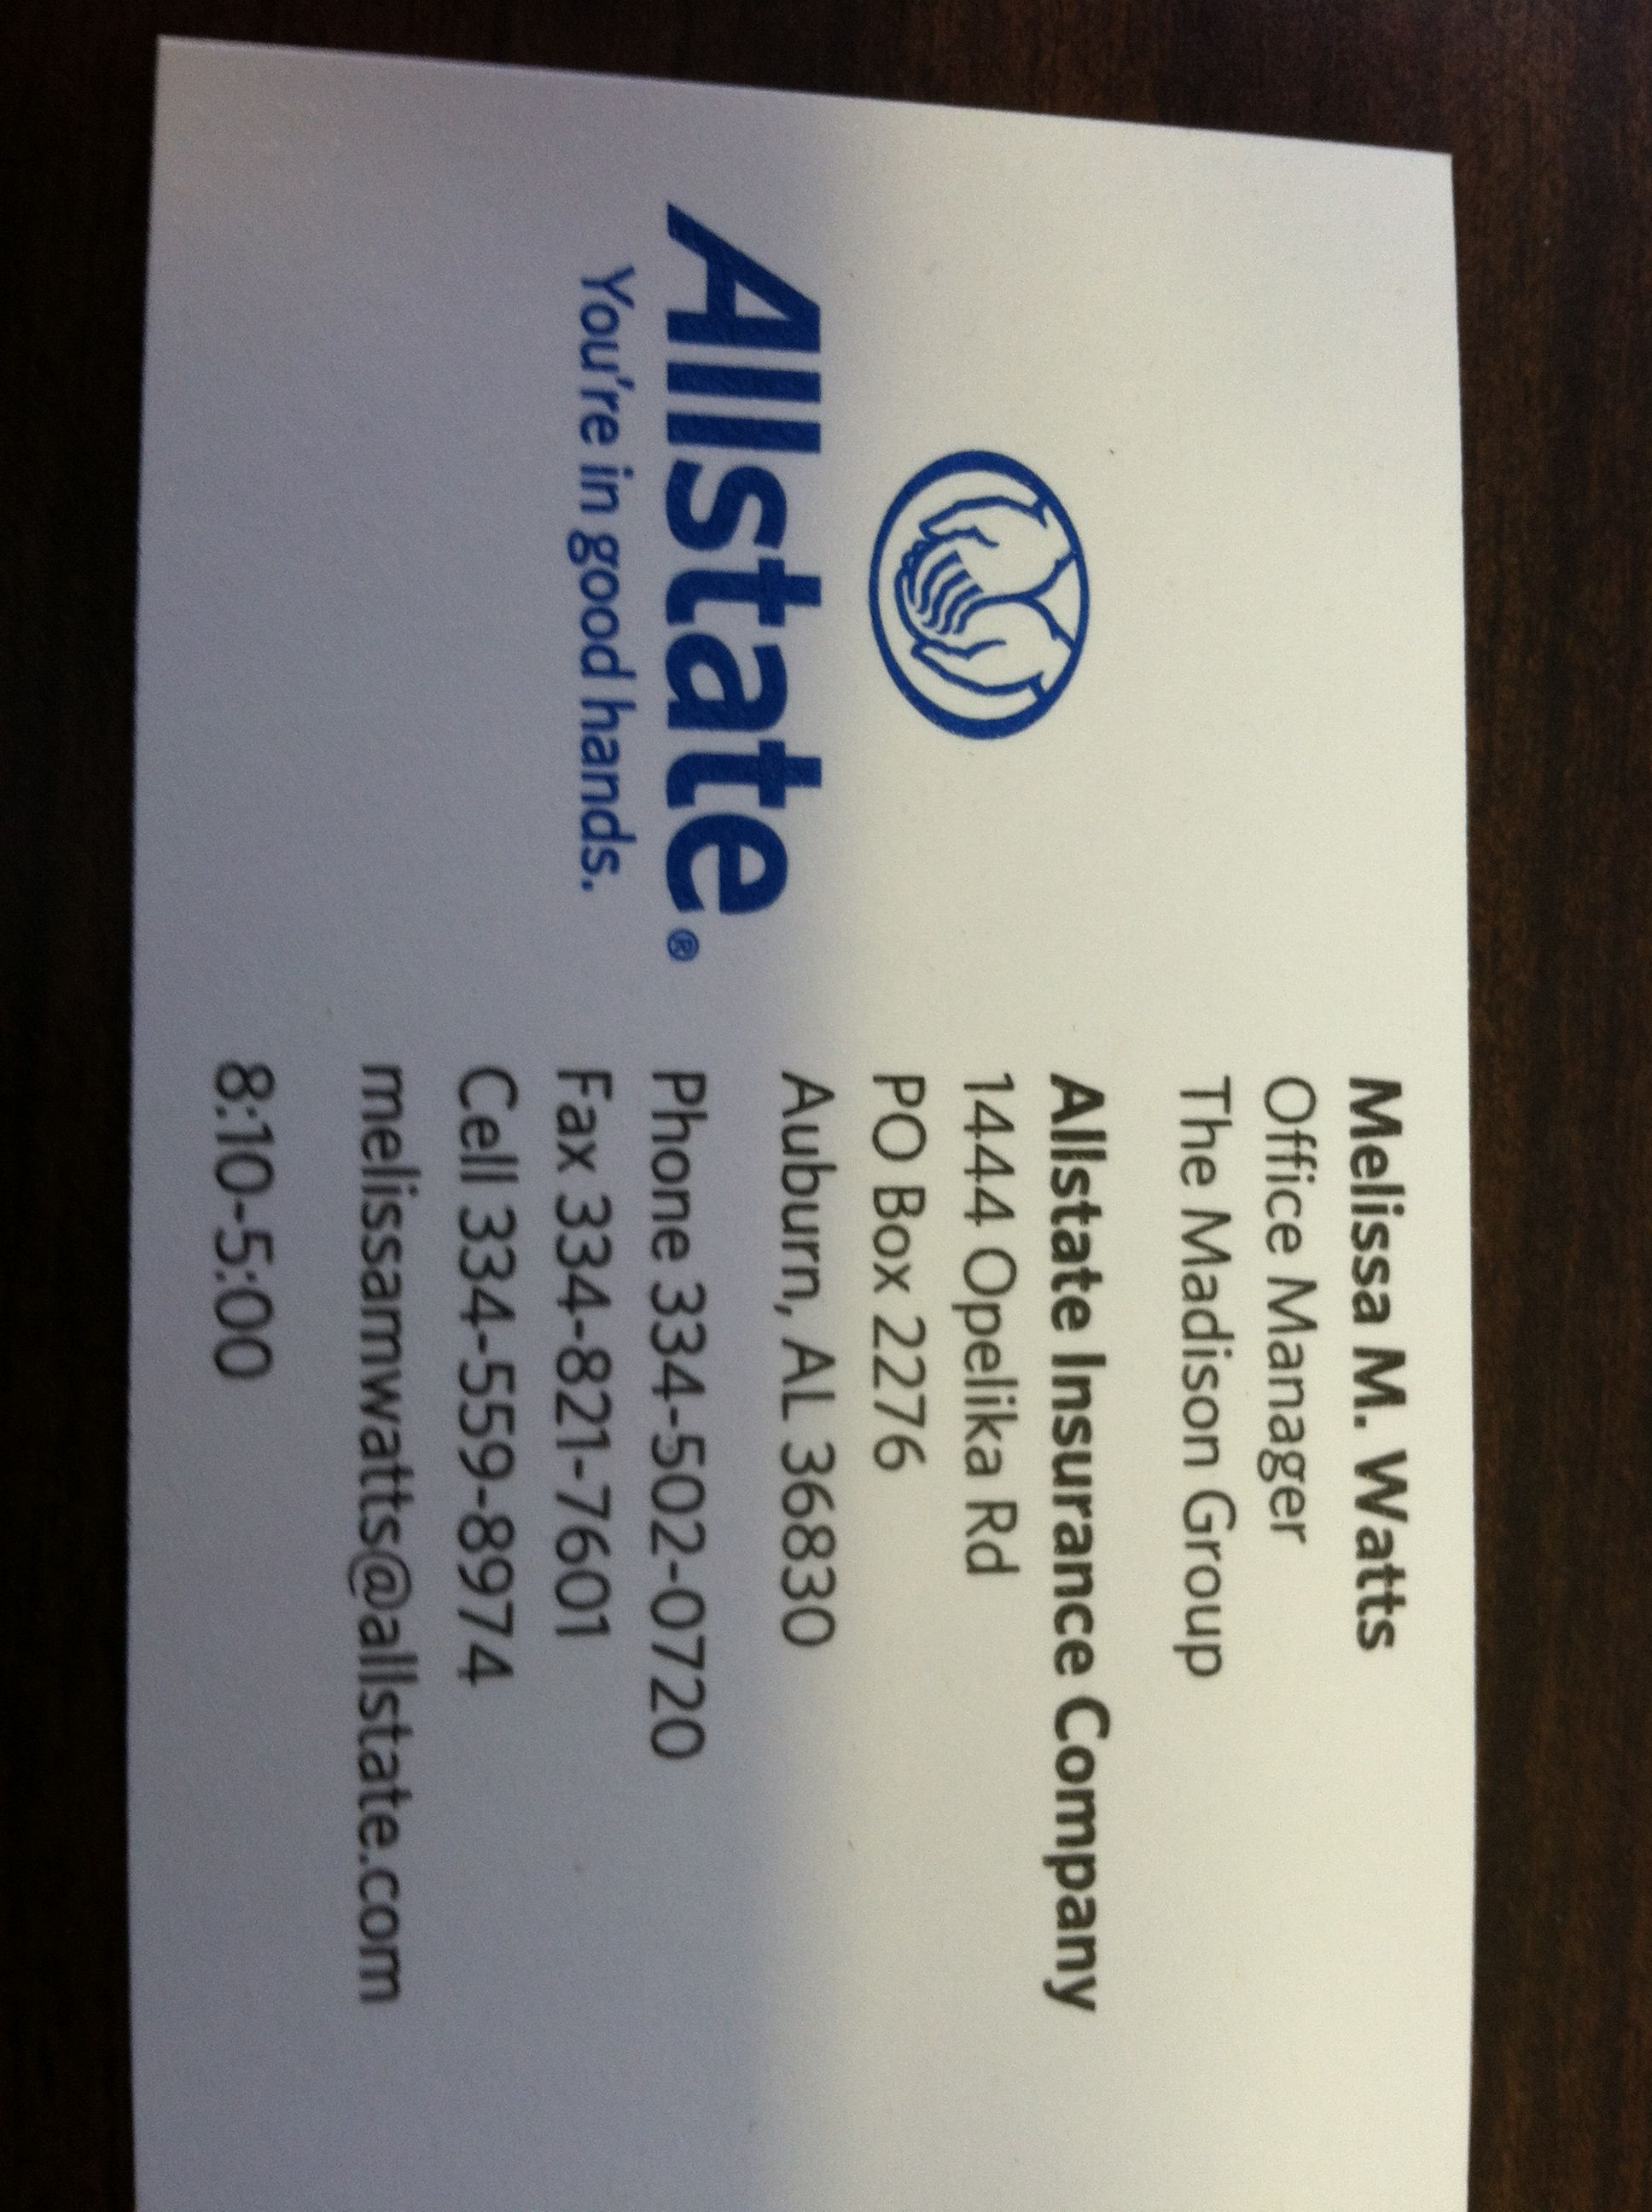 Allstate Insurance Co Call Me For A Quote 334 502 0720